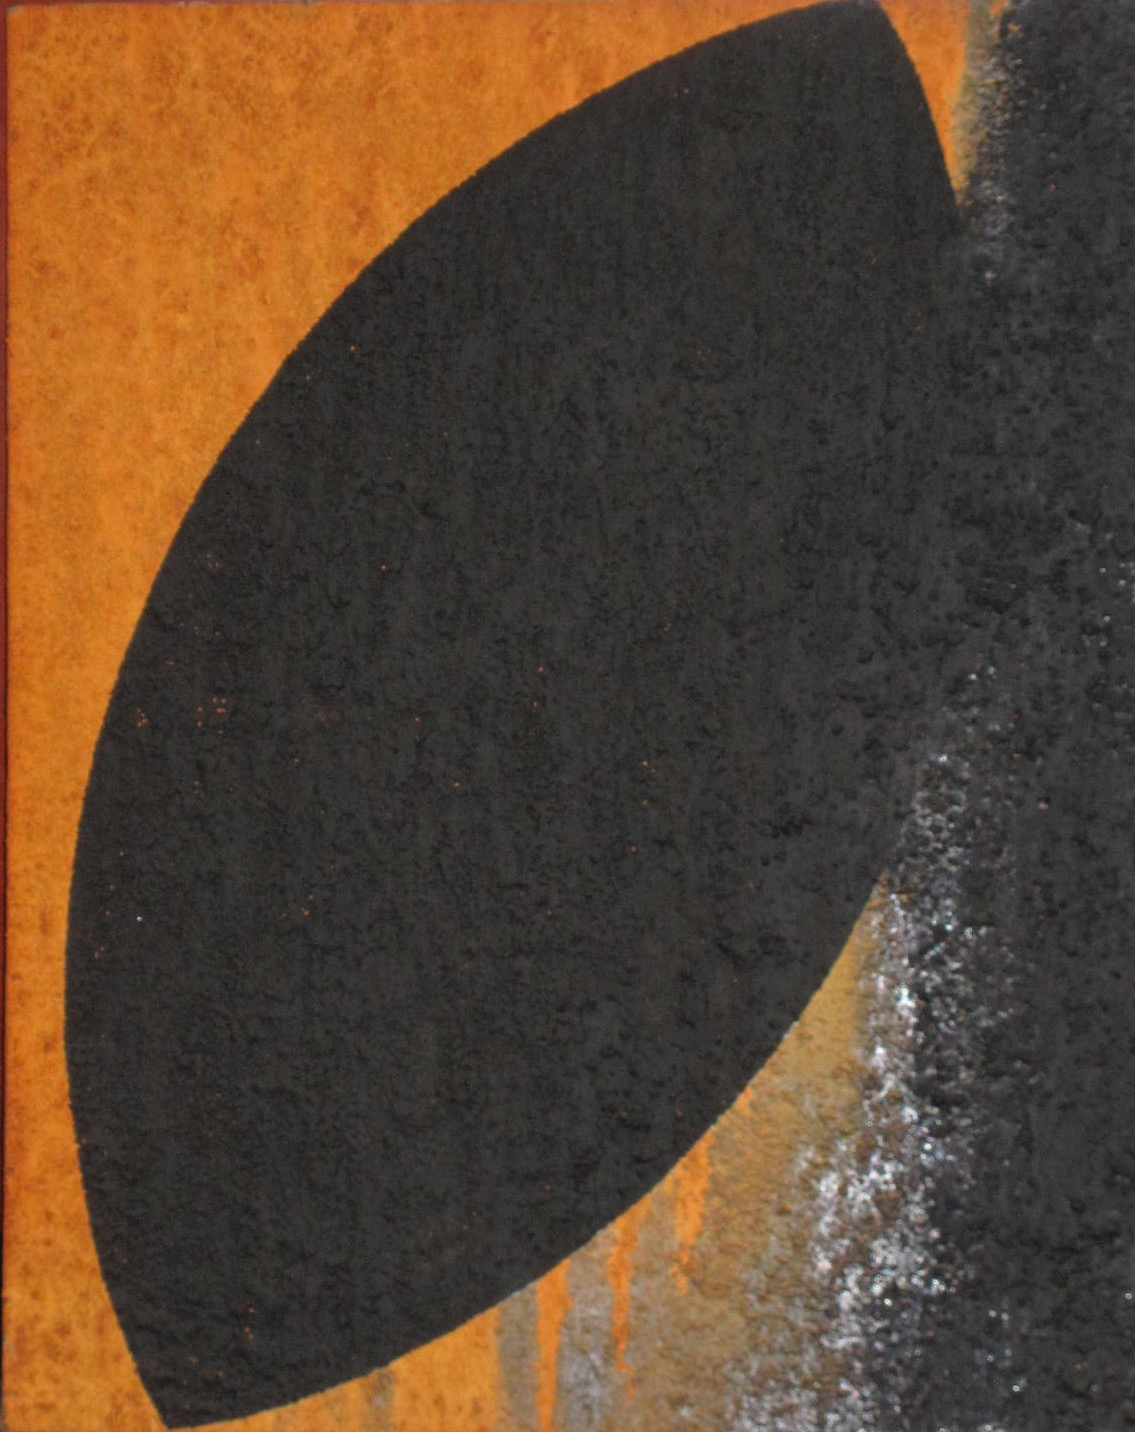 """Untitled, 1988.  Iron oxide and acrylic on canvas. 30 x 24"""""""